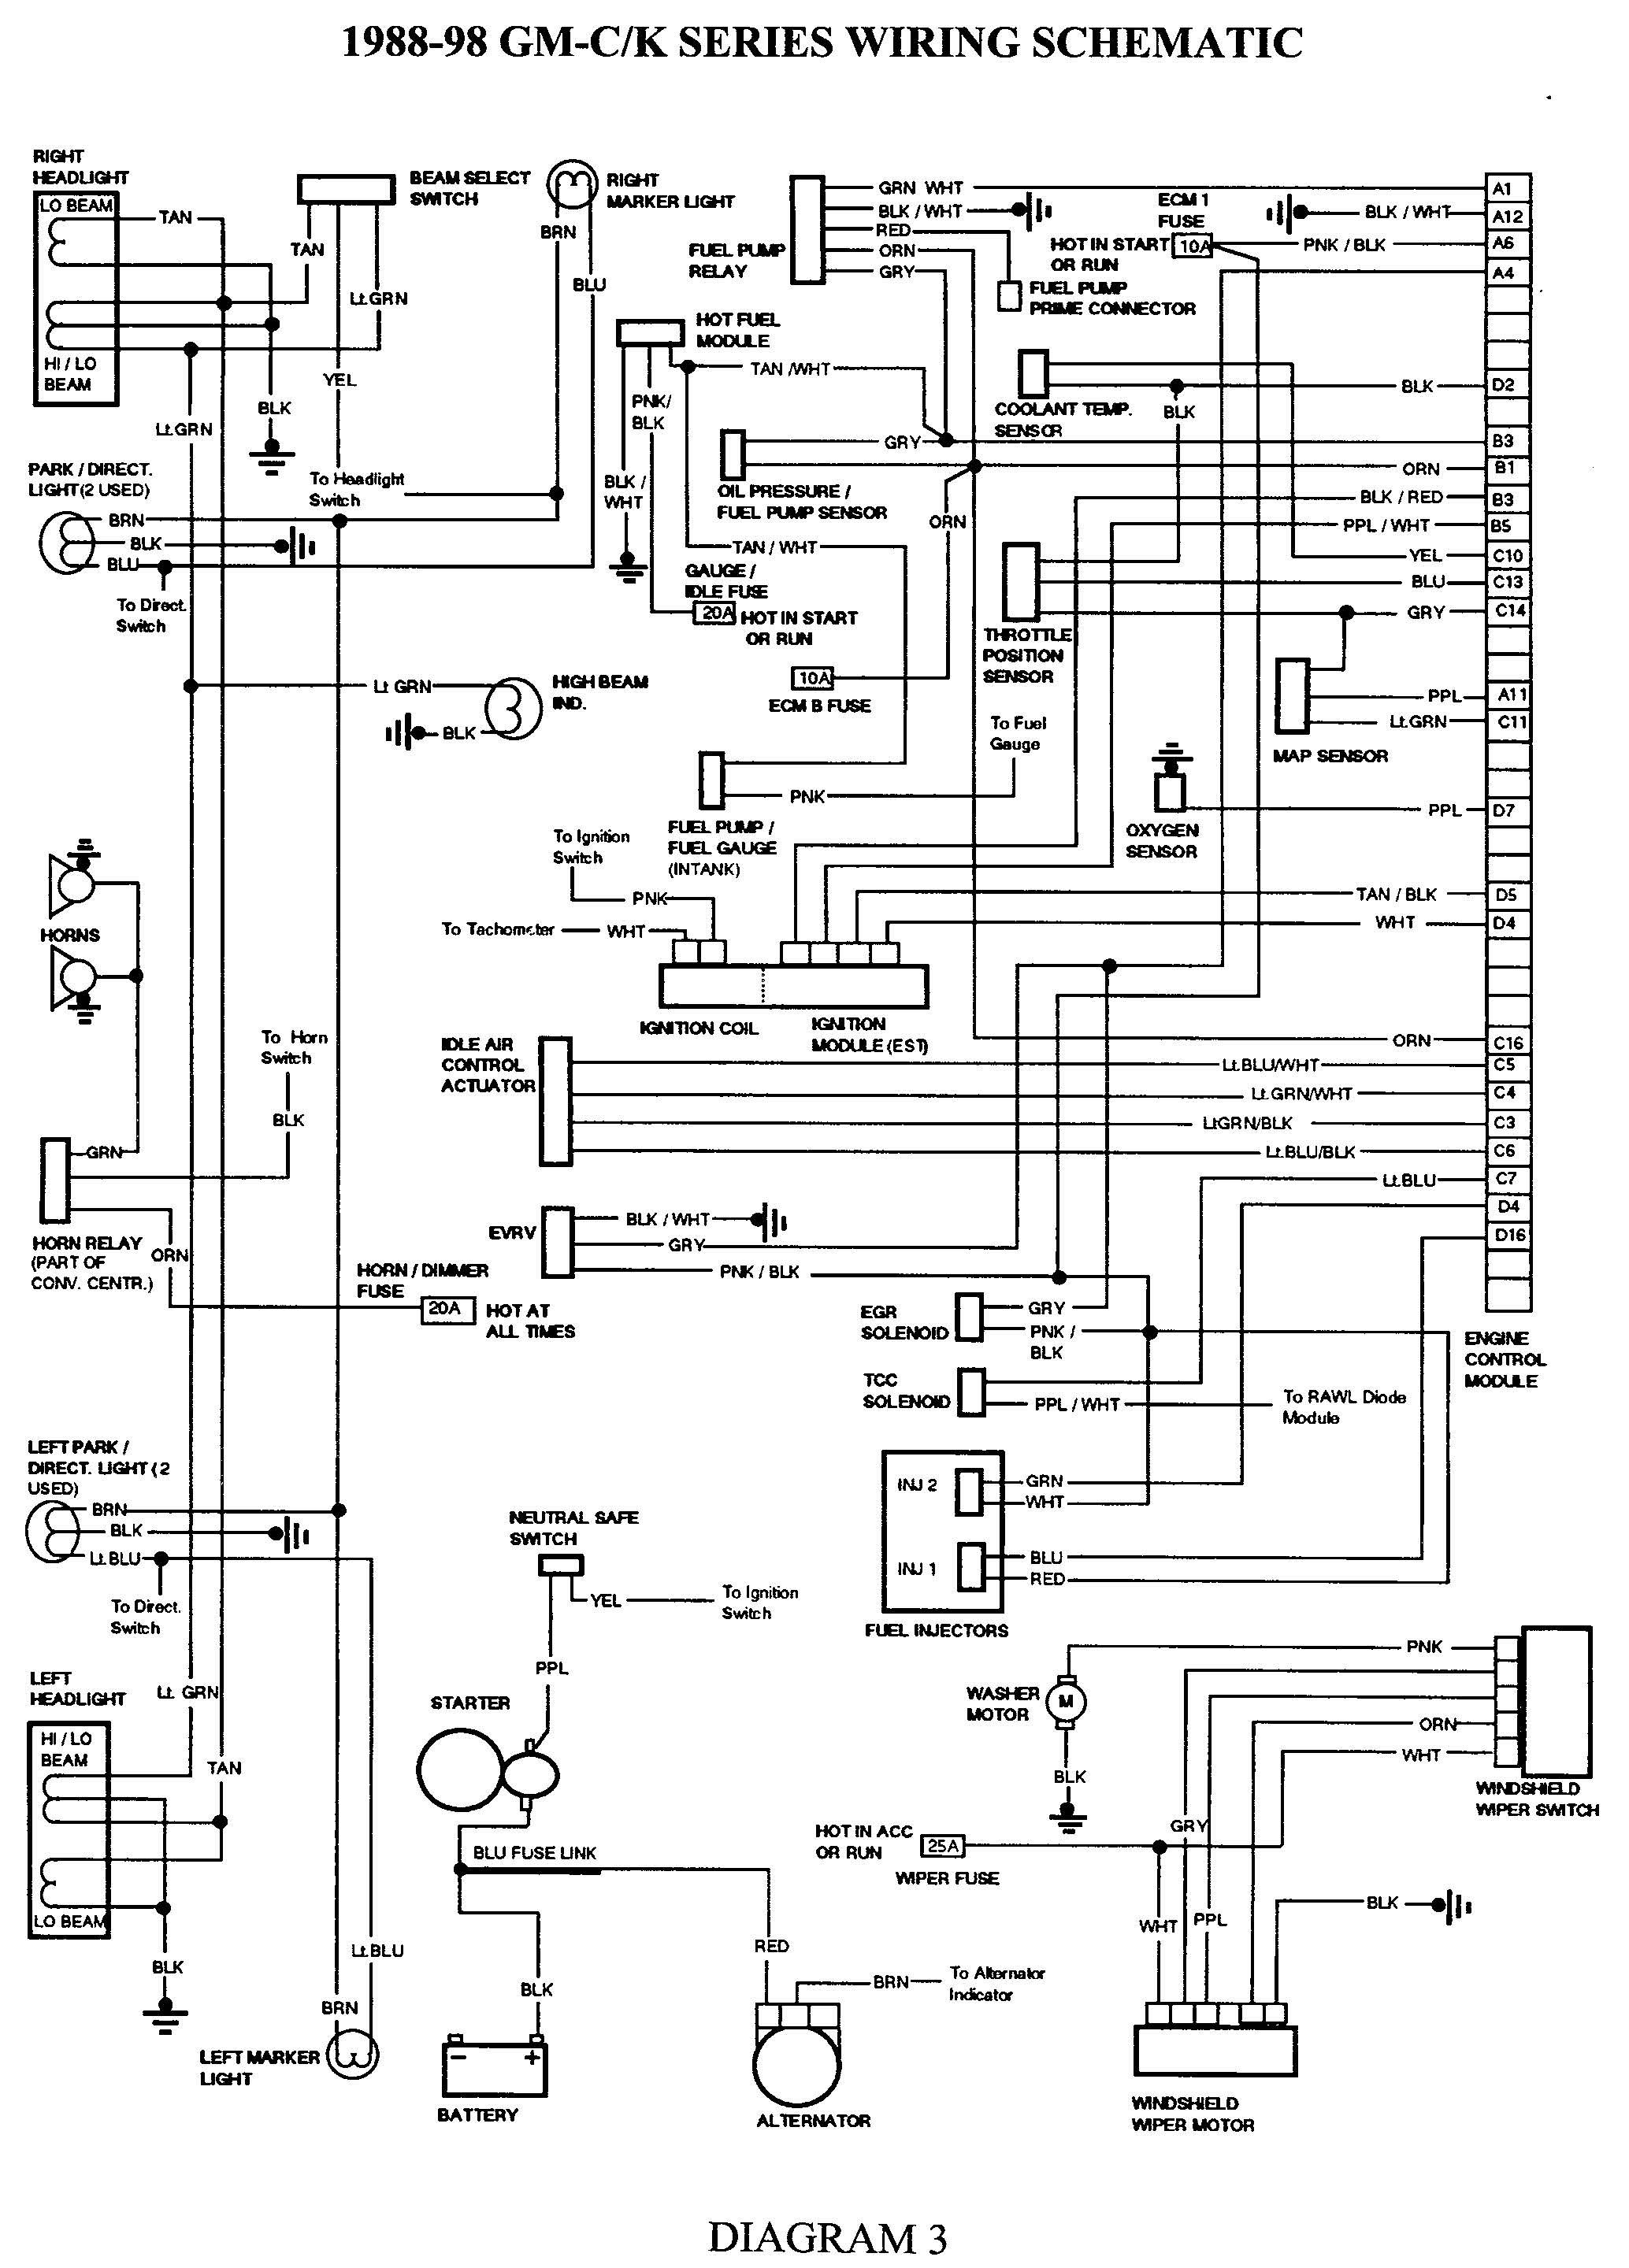 1986 chevrolet c10 5.7 v8 engine wiring diagram ... 1994 chevy s10 wiring harness diagram